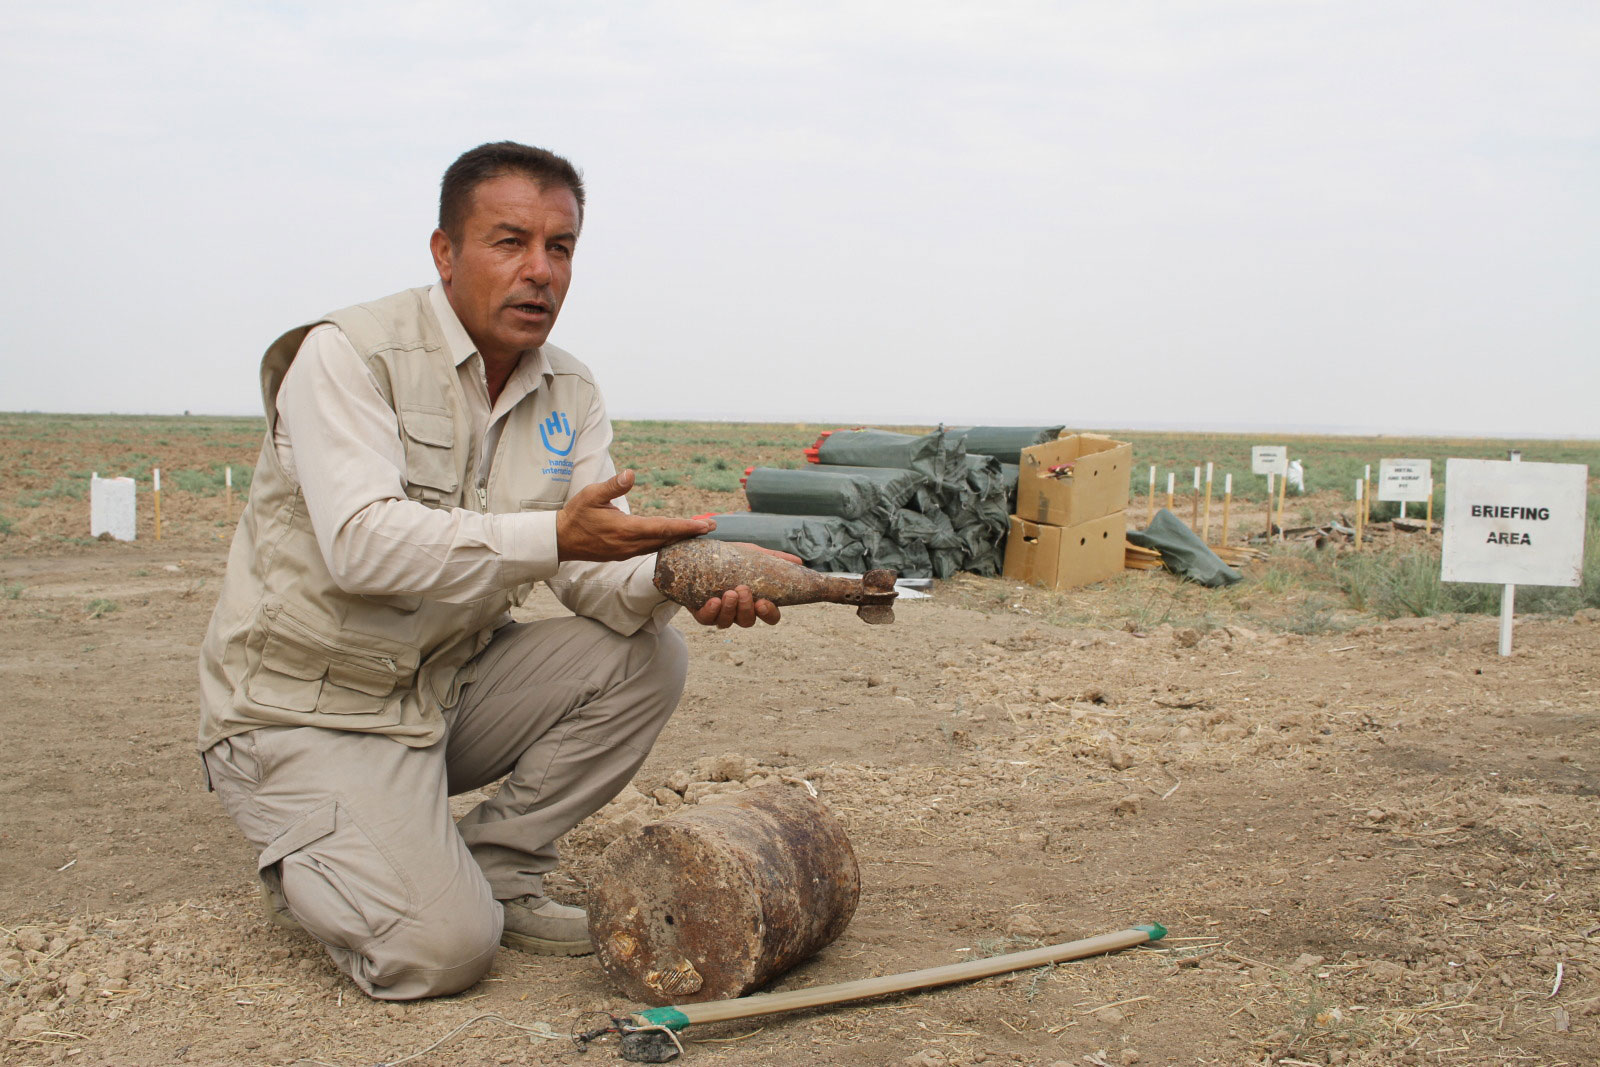 c_Shwan-Nawzad_HI__Hywa_-head-of-HI's-demining-team-in-Chad_-holds-an-explosive-remnant-of-war-in-his-hand.jpg